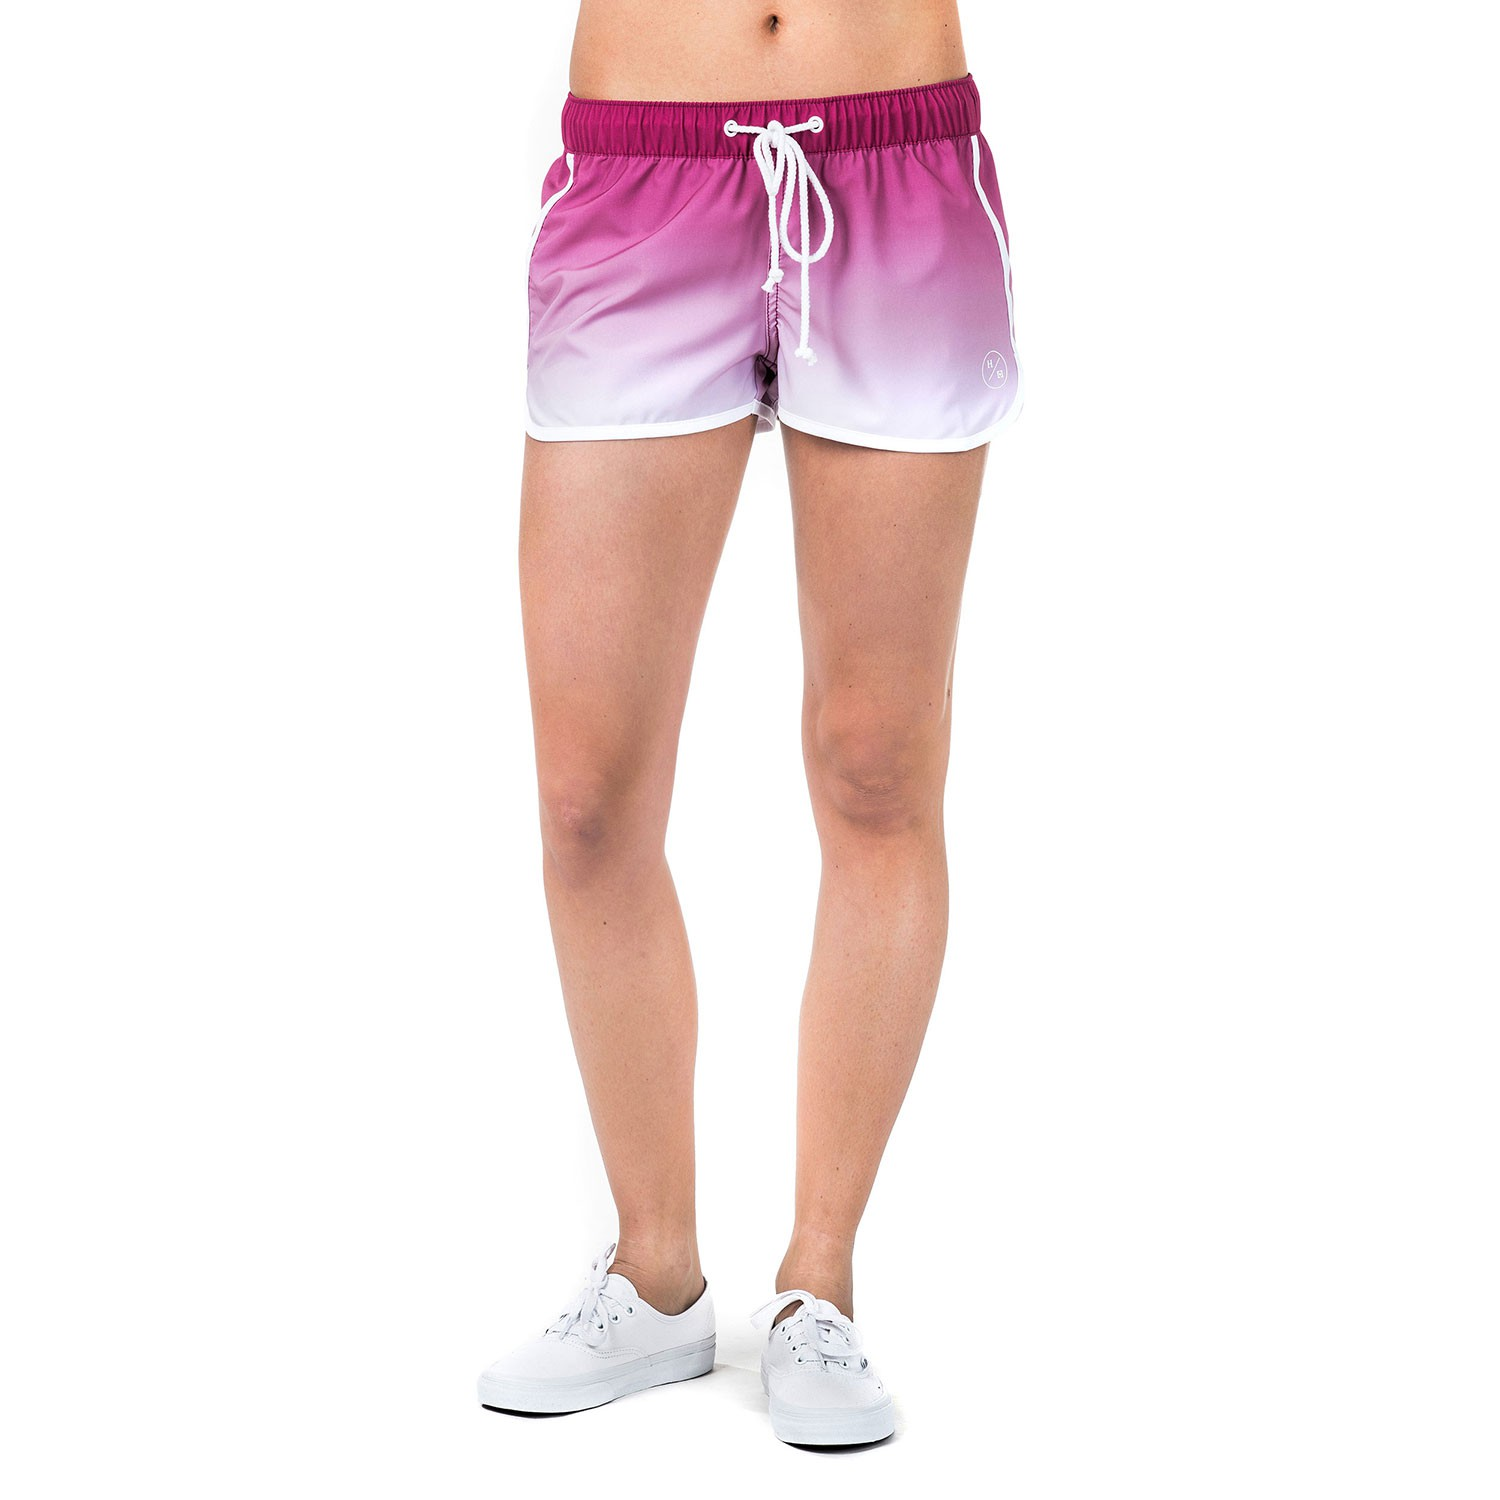 Fitness Horsefeathers Lilya purple